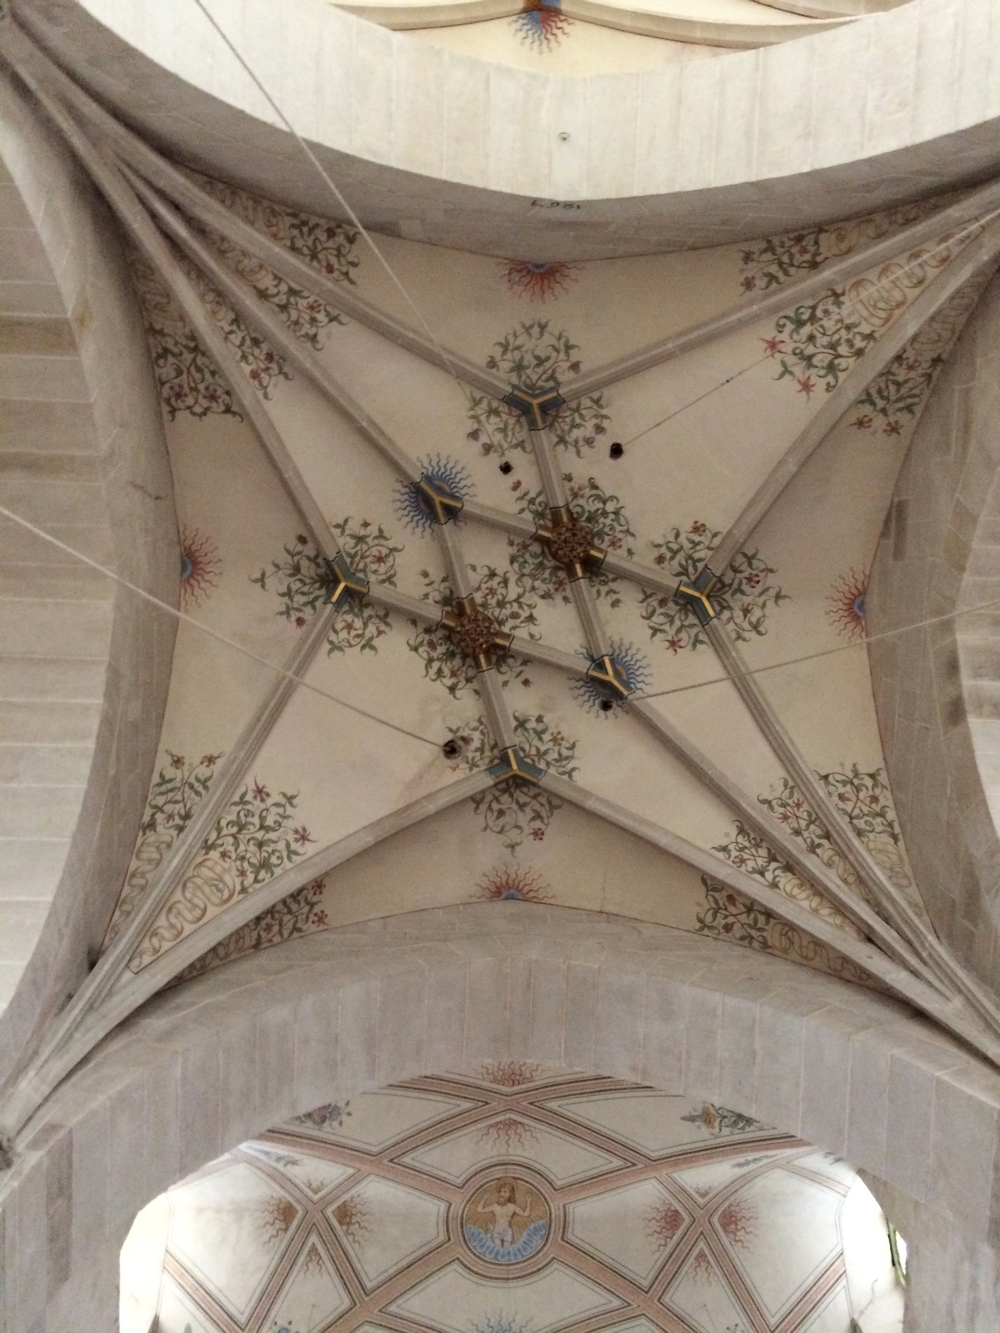 There were ceiling paintings all over the abbey.